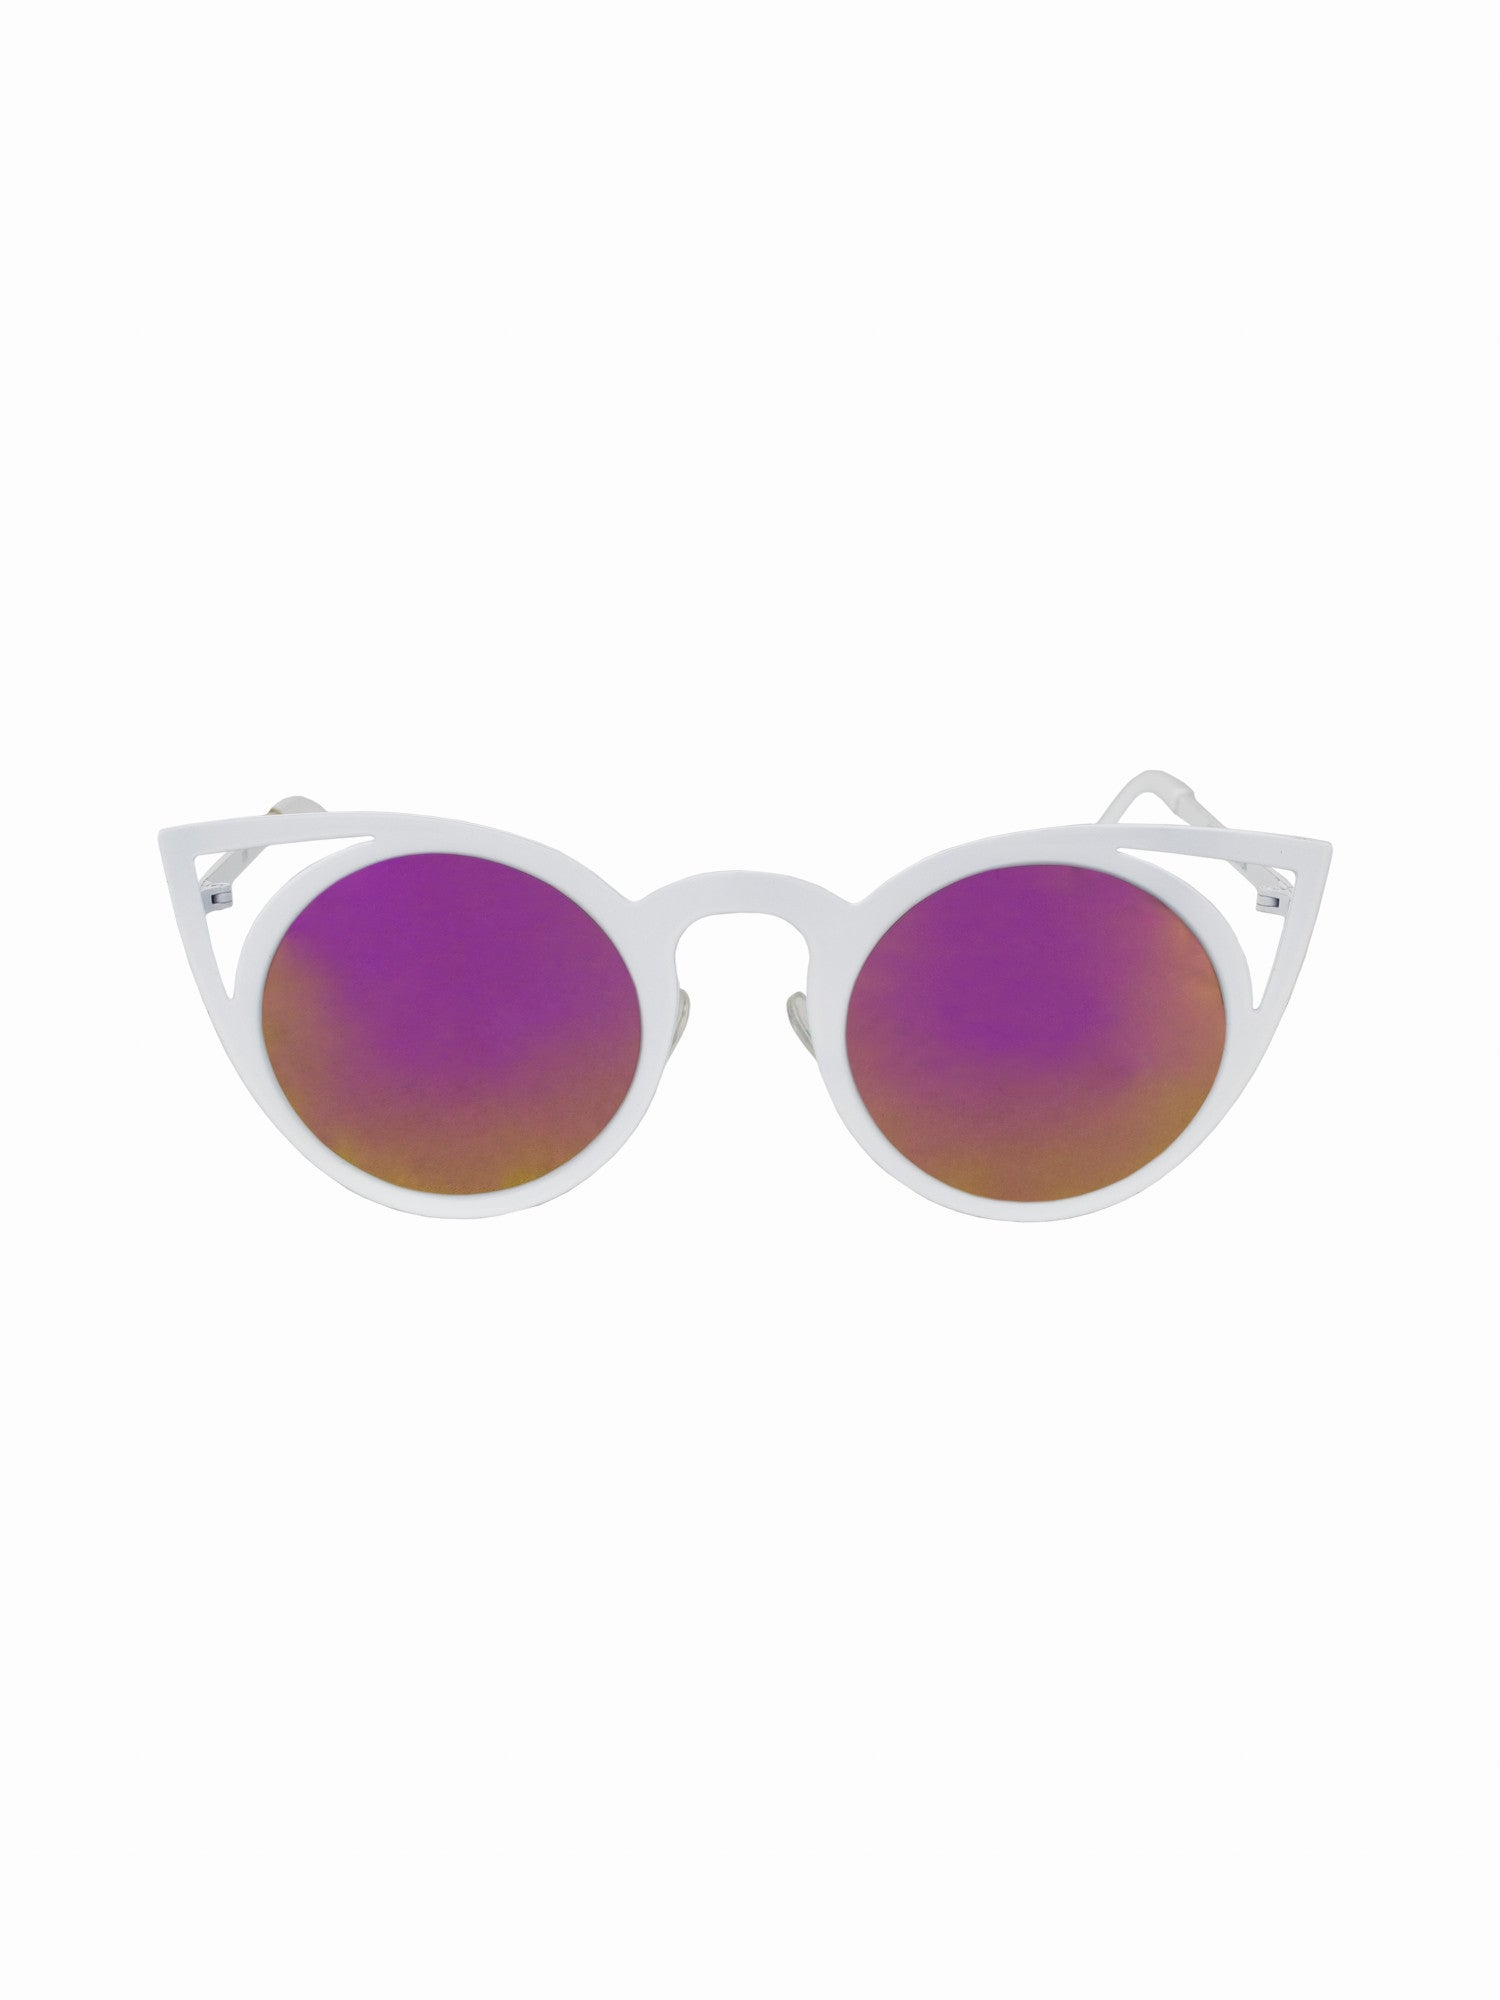 Cat Eye Retro Purrfect Sunnies - Gold Soul - 1